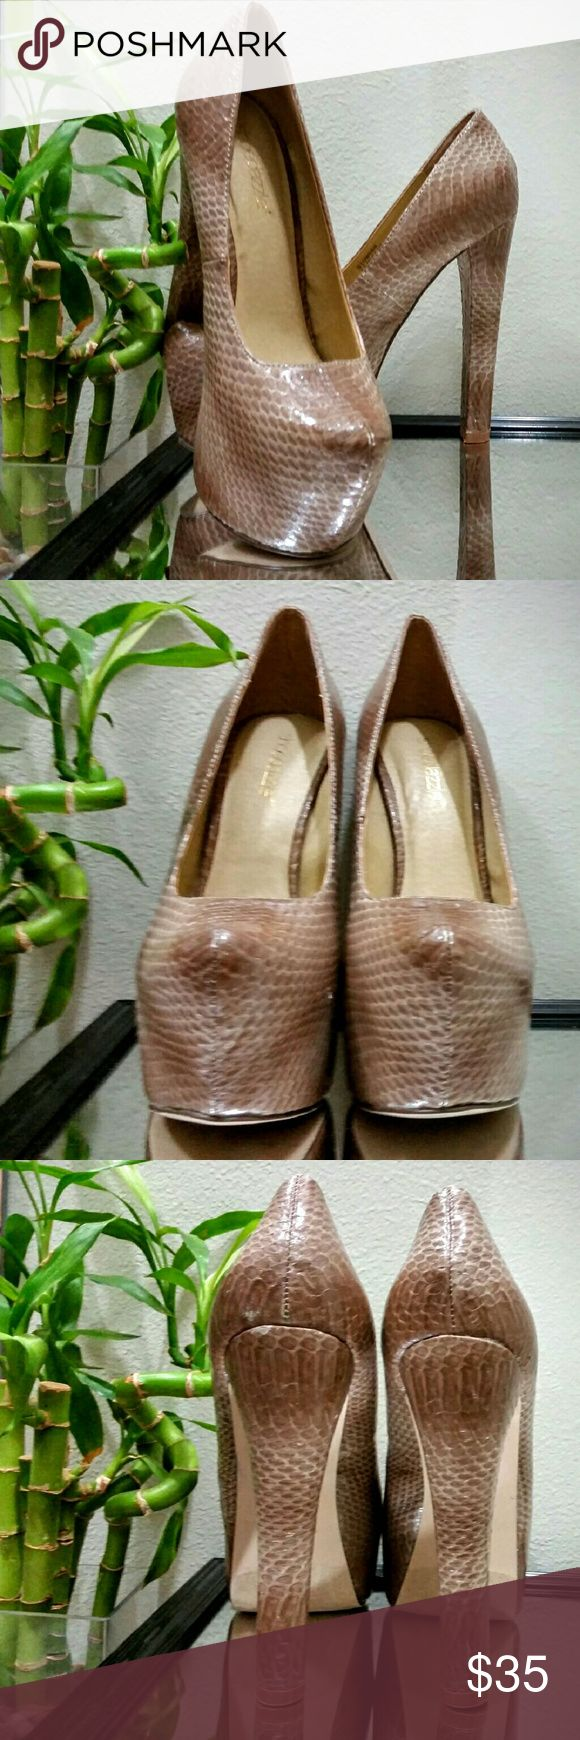 Snakeskin pattern platform heels by shoedazzle CONDITION: Like New ! --- CONCERNS: minor signs of wear.  --- I will provide more pics, materials, measurements, etc. upon request! --- ***I welcome ALL OFFERS and do bundle discounts!*** Shoe Dazzle Shoes Platforms